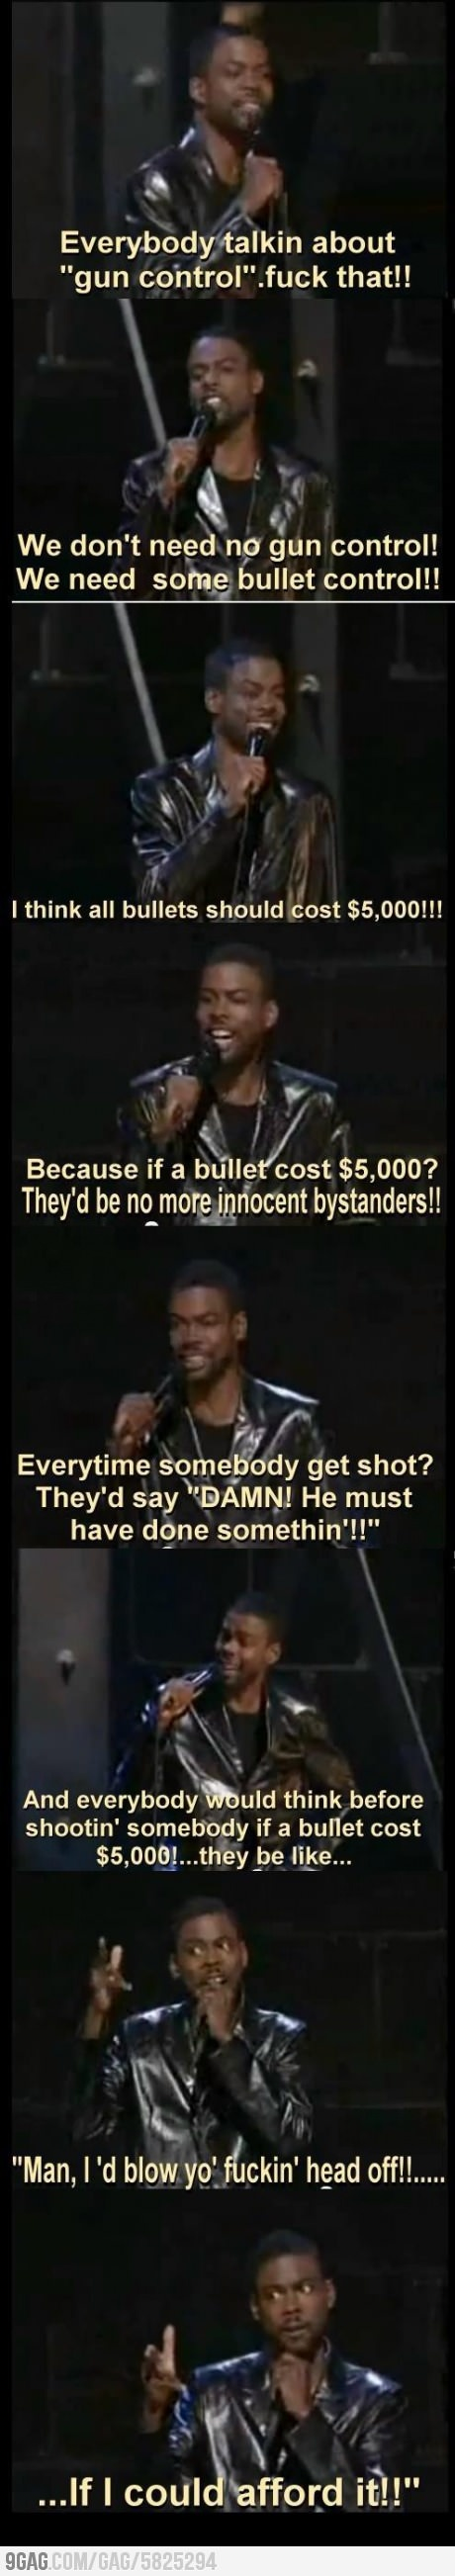 Chris Rock on Gun Control, oh my, this is great haha.